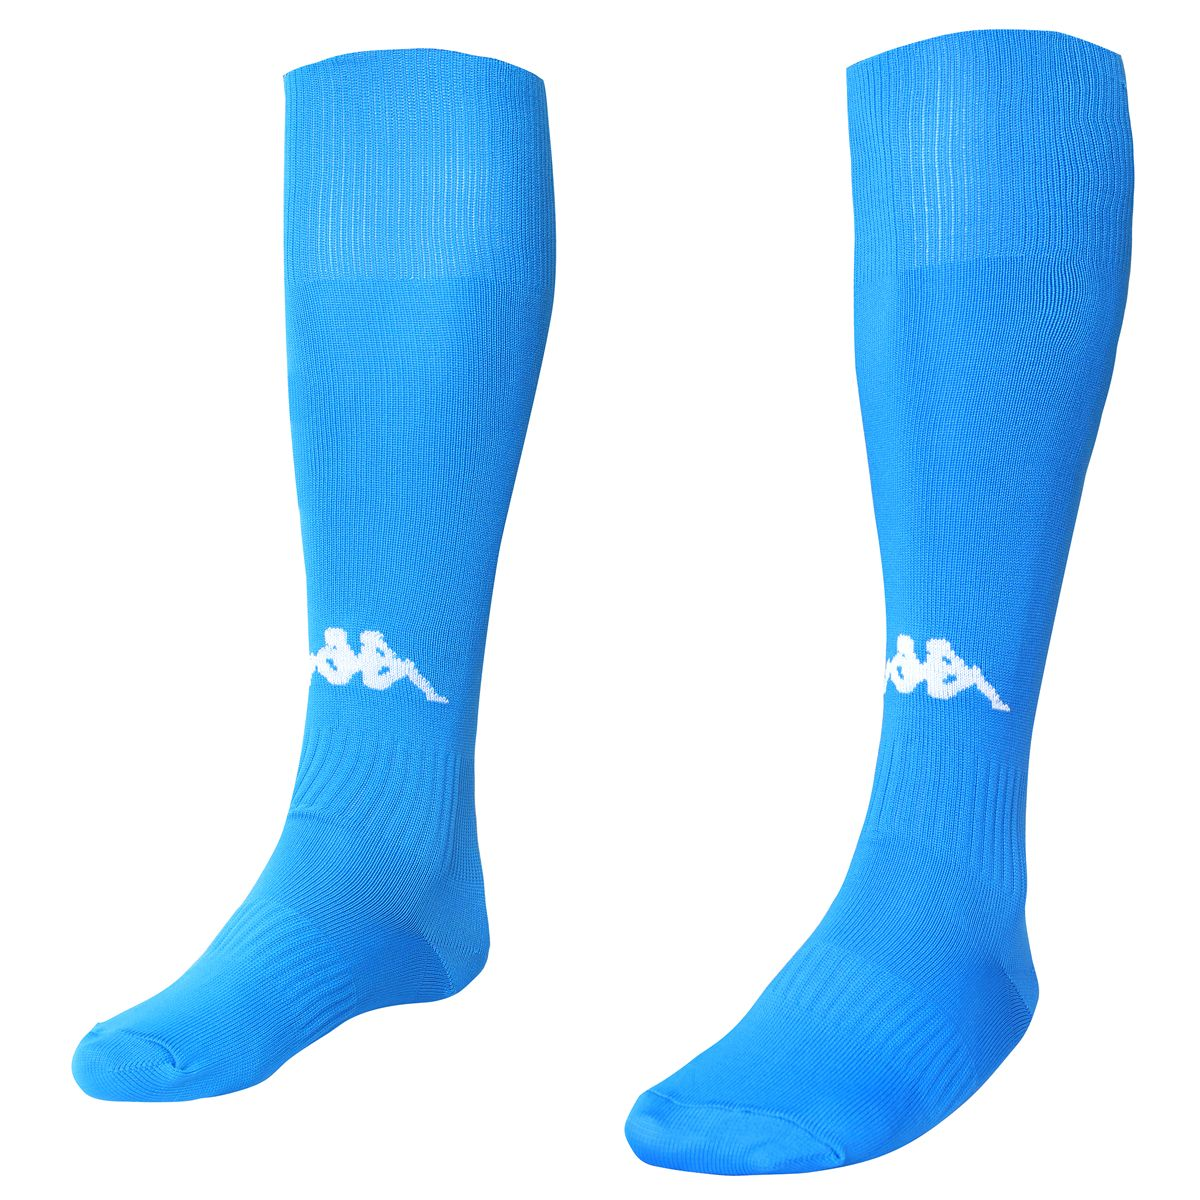 Kappa Socks KAPPA4SOCCER HIGH 1PACK Boy Knee High